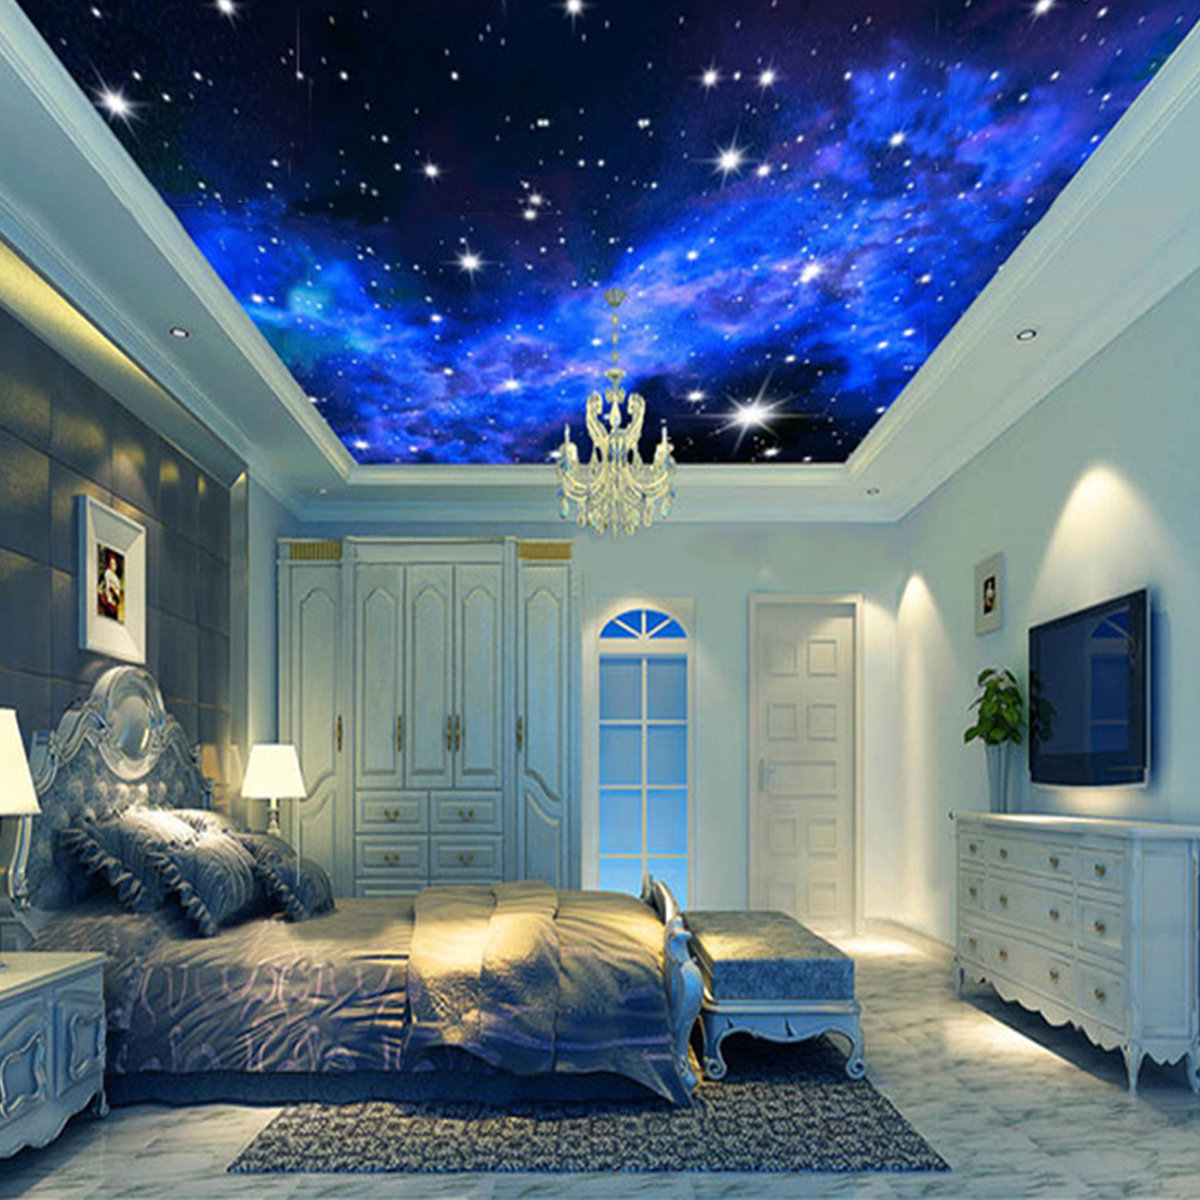 3d wallpaper mural night clouds star sky wall paper background interior ceiling home decor is Wallpaper home design ideas